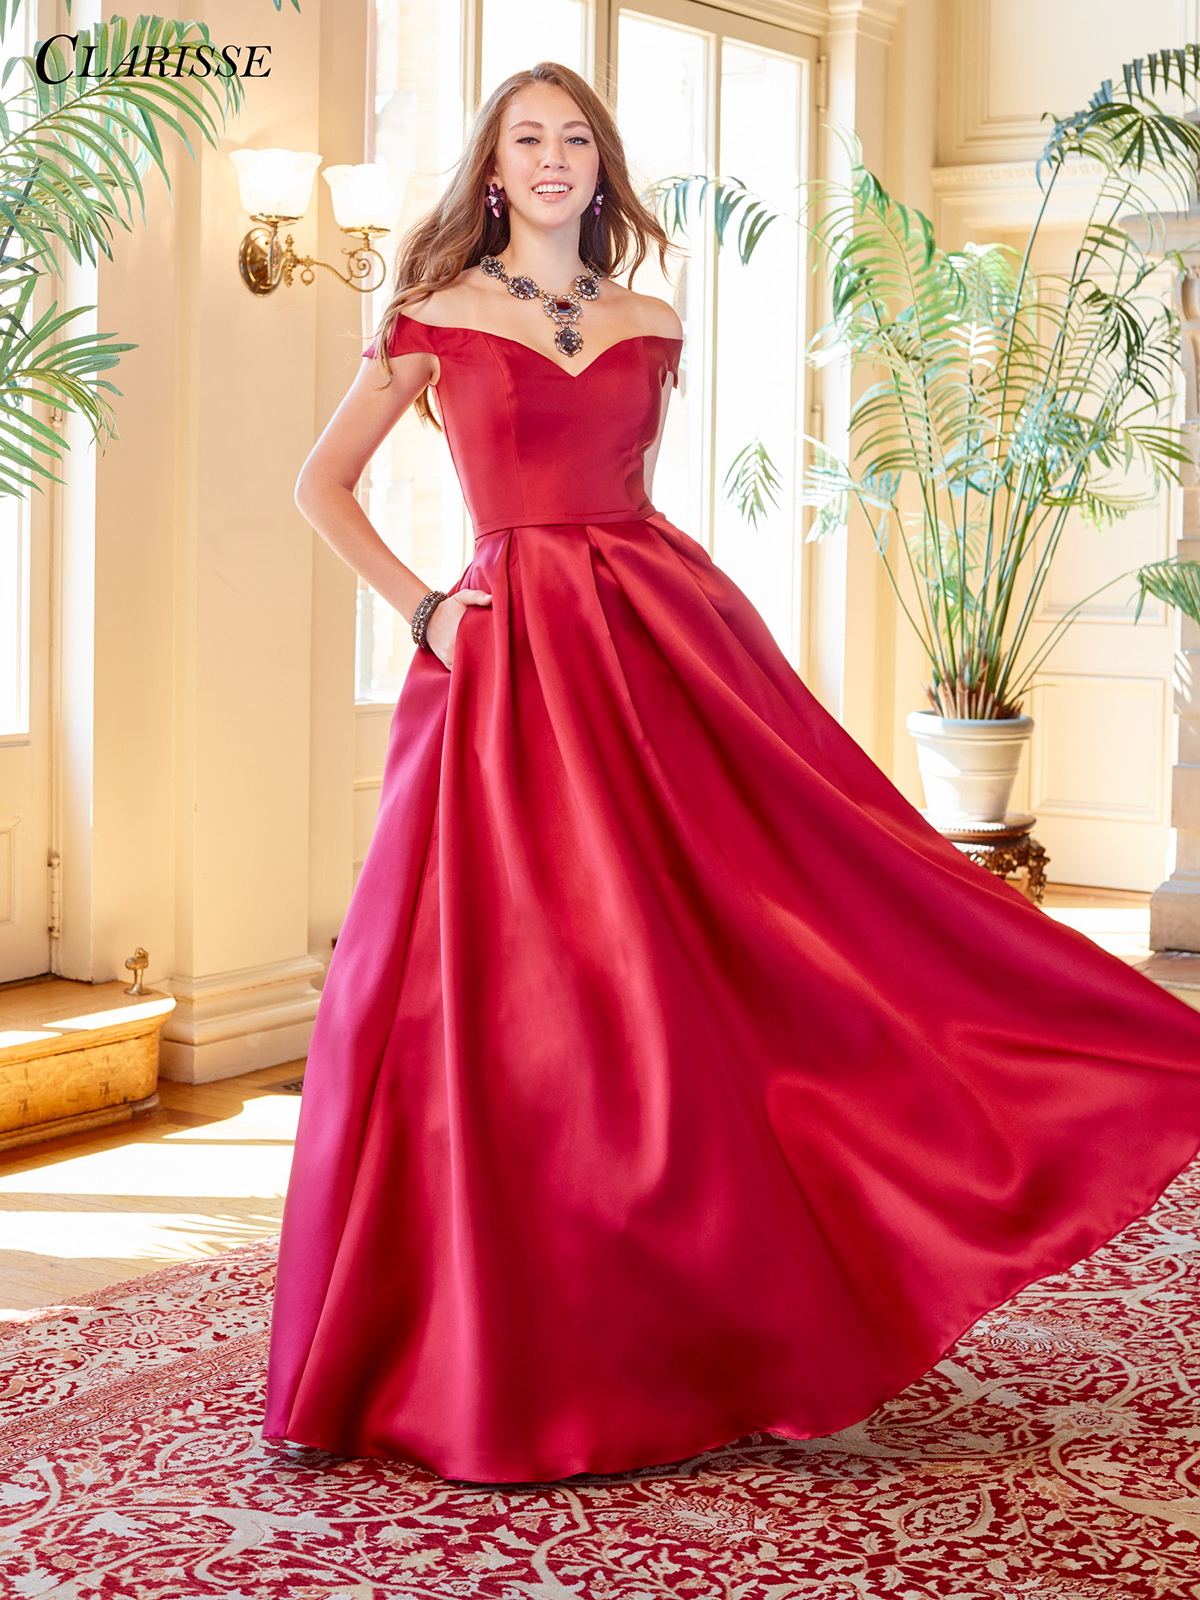 2018 Prom Dress Clarisse 3442 Promgirl Net